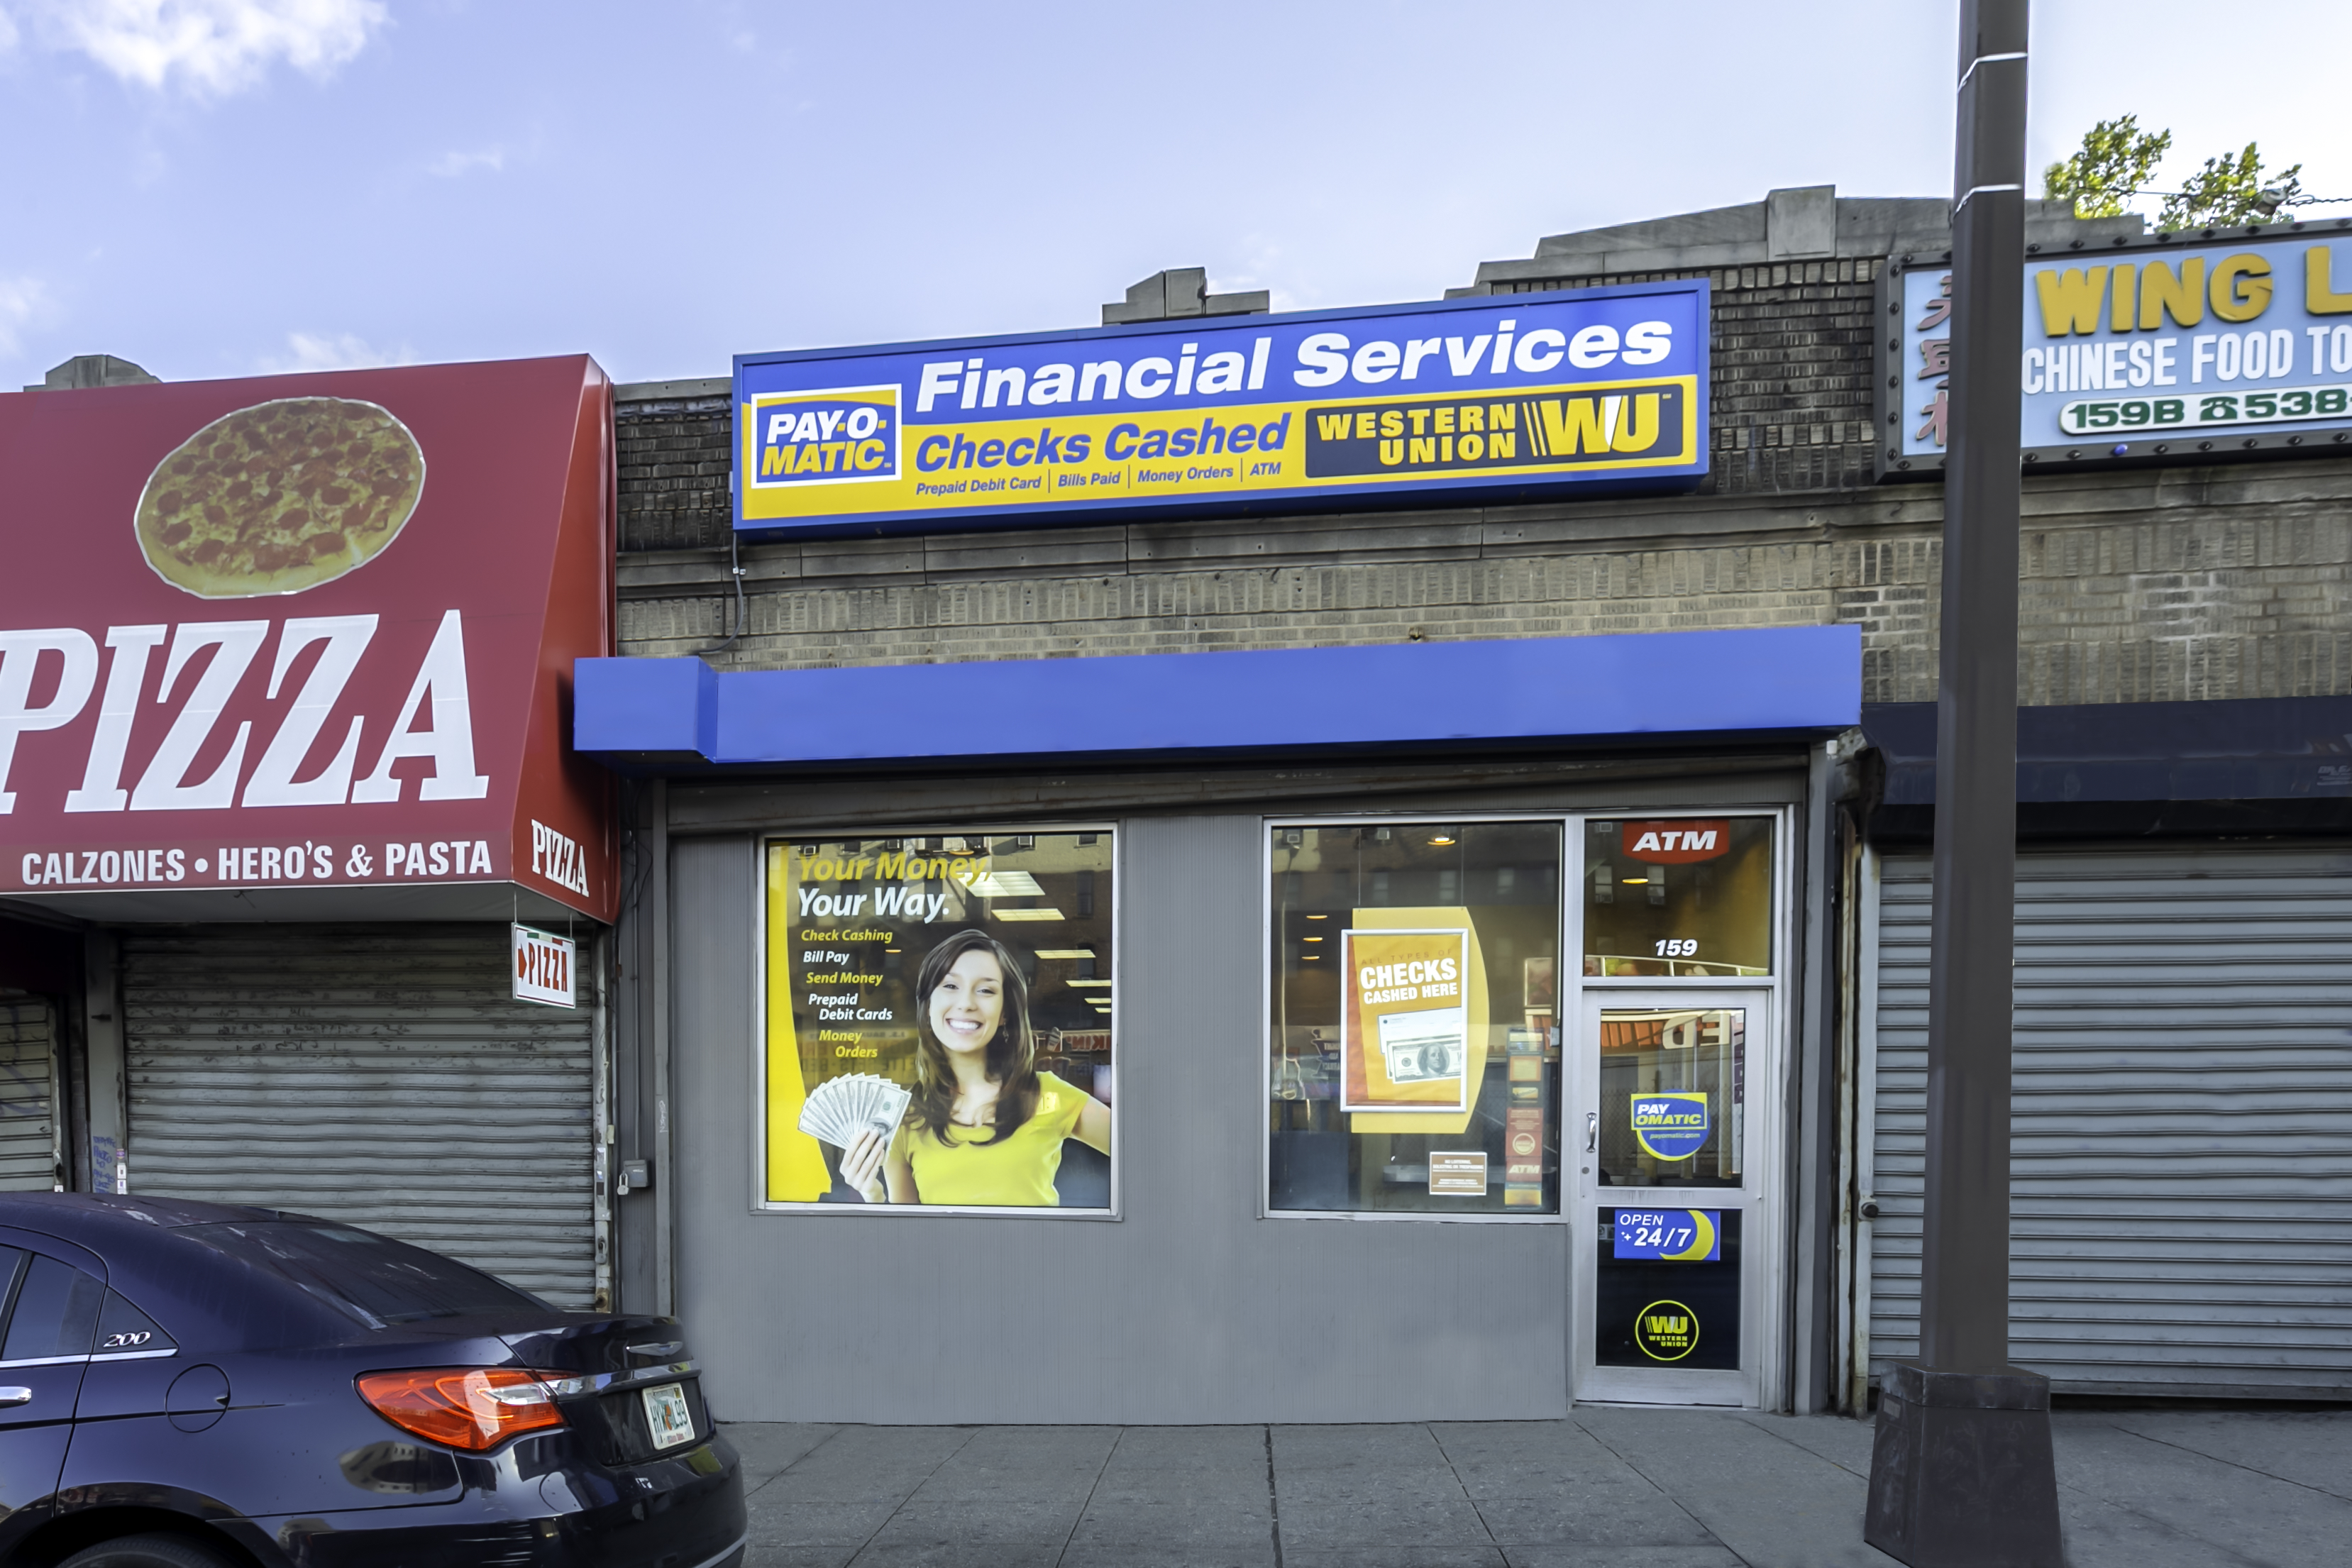 Exterior view from street of PAYOMATIC store located at 159 East 170th St Bronx, NY 10452